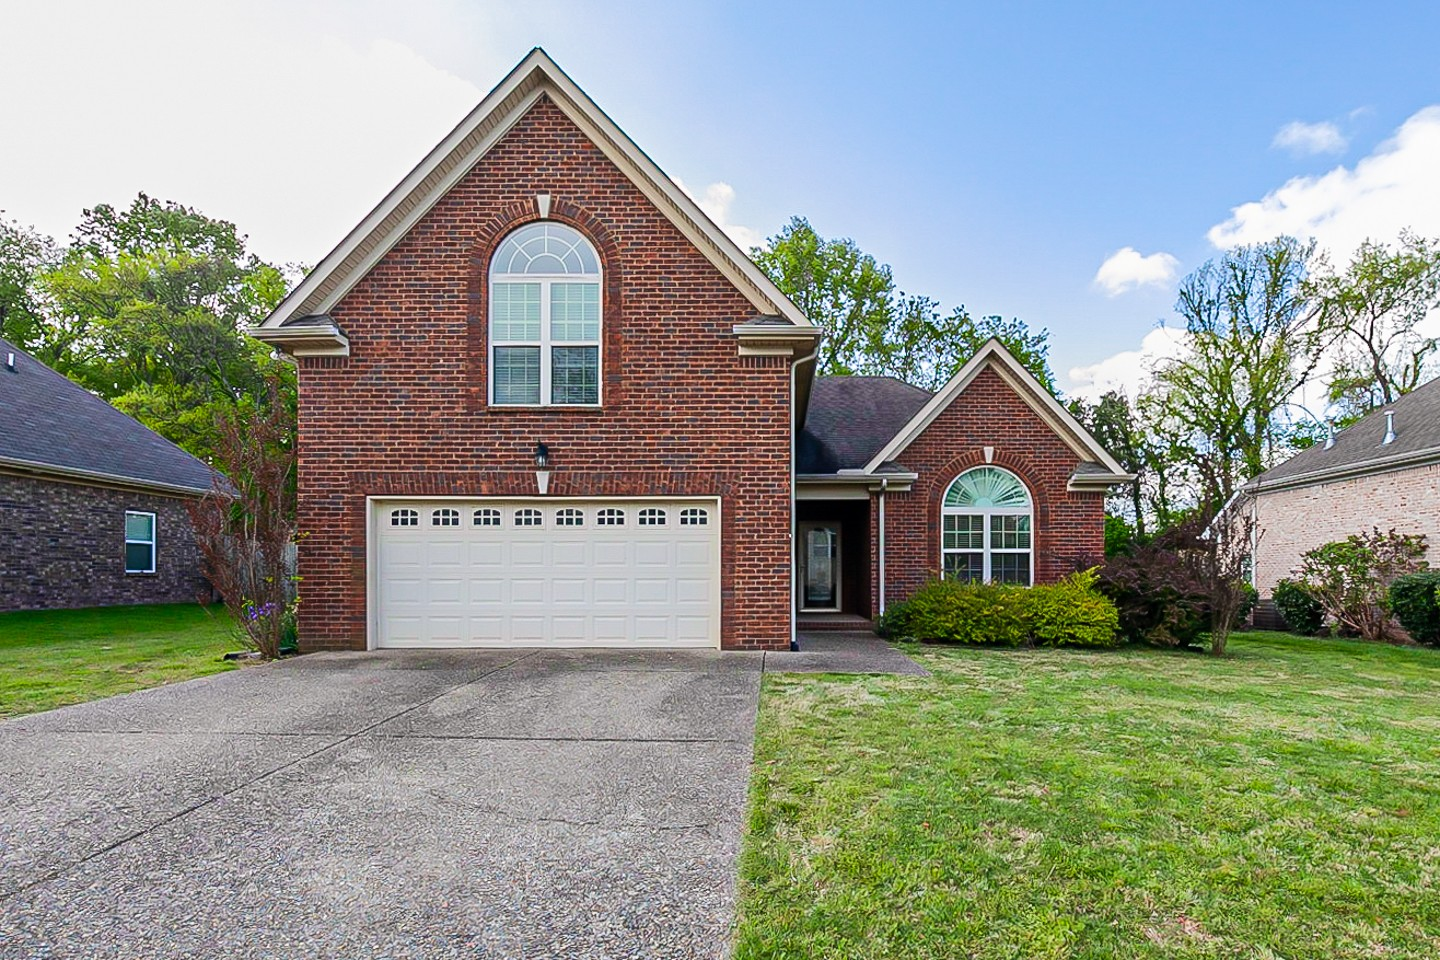 617 Smoky Mountains Dr Property Photo - Gallatin, TN real estate listing